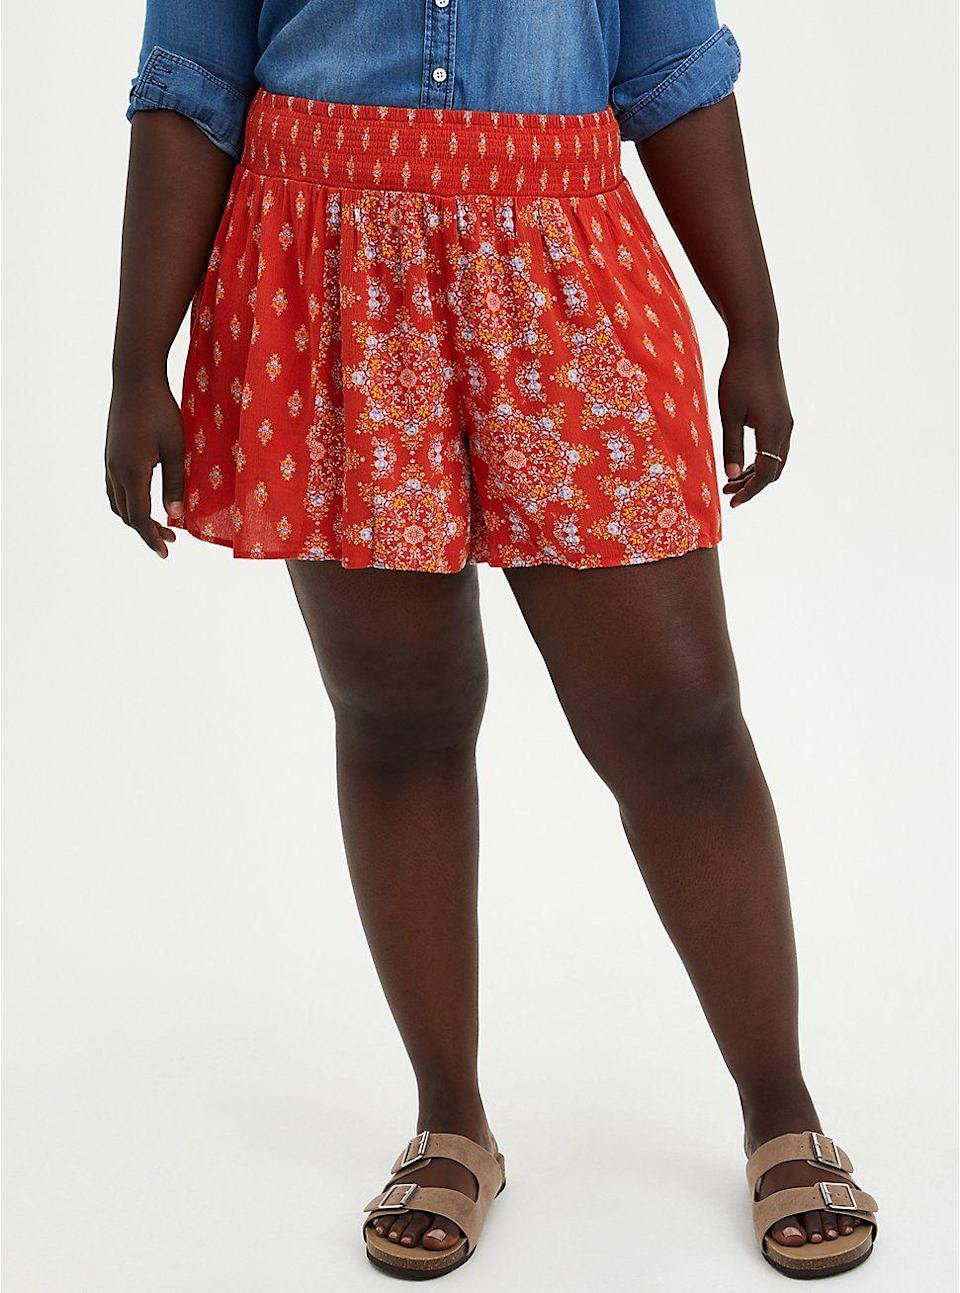 """<p>torrid.com</p><p><strong>$34.12</strong></p><p><a href=""""https://go.redirectingat.com?id=74968X1596630&url=https%3A%2F%2Fwww.torrid.com%2Fproduct%2Fred-medallion-print-gauze-smock-short%2F15051339.html&sref=https%3A%2F%2Fwww.thepioneerwoman.com%2Ffashion-style%2Fg37083925%2Fbest-plus-size-shorts%2F"""" rel=""""nofollow noopener"""" target=""""_blank"""" data-ylk=""""slk:Shop Now"""" class=""""link rapid-noclick-resp"""">Shop Now</a></p><p>These shorts are easy and breezy—a.k.a. the perfect pair for anyone seeking a looser fit and some extra movement. And how cute is the bandana-inspired print?! </p>"""